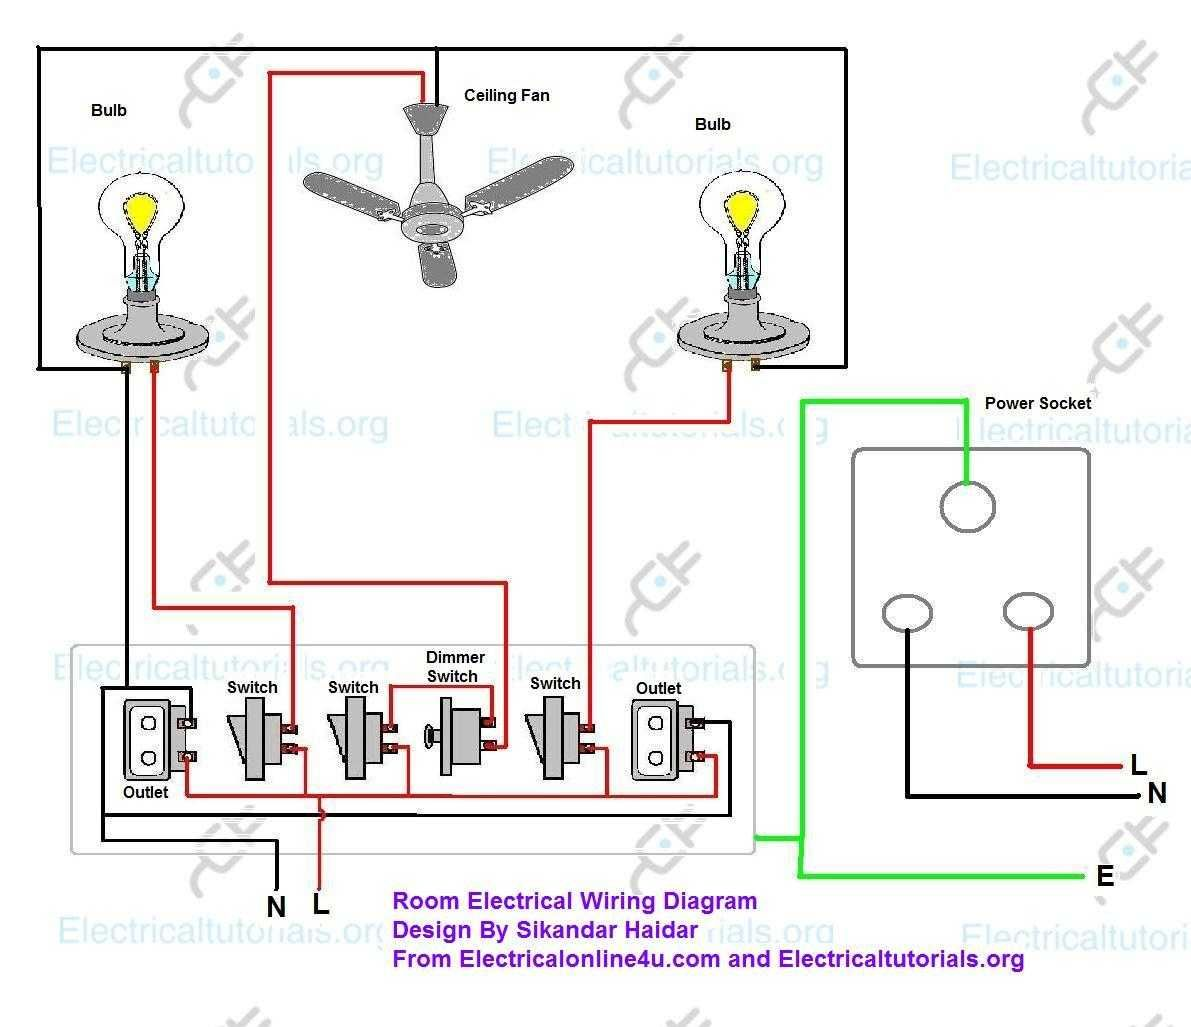 Electrical Wiring Diagram In House